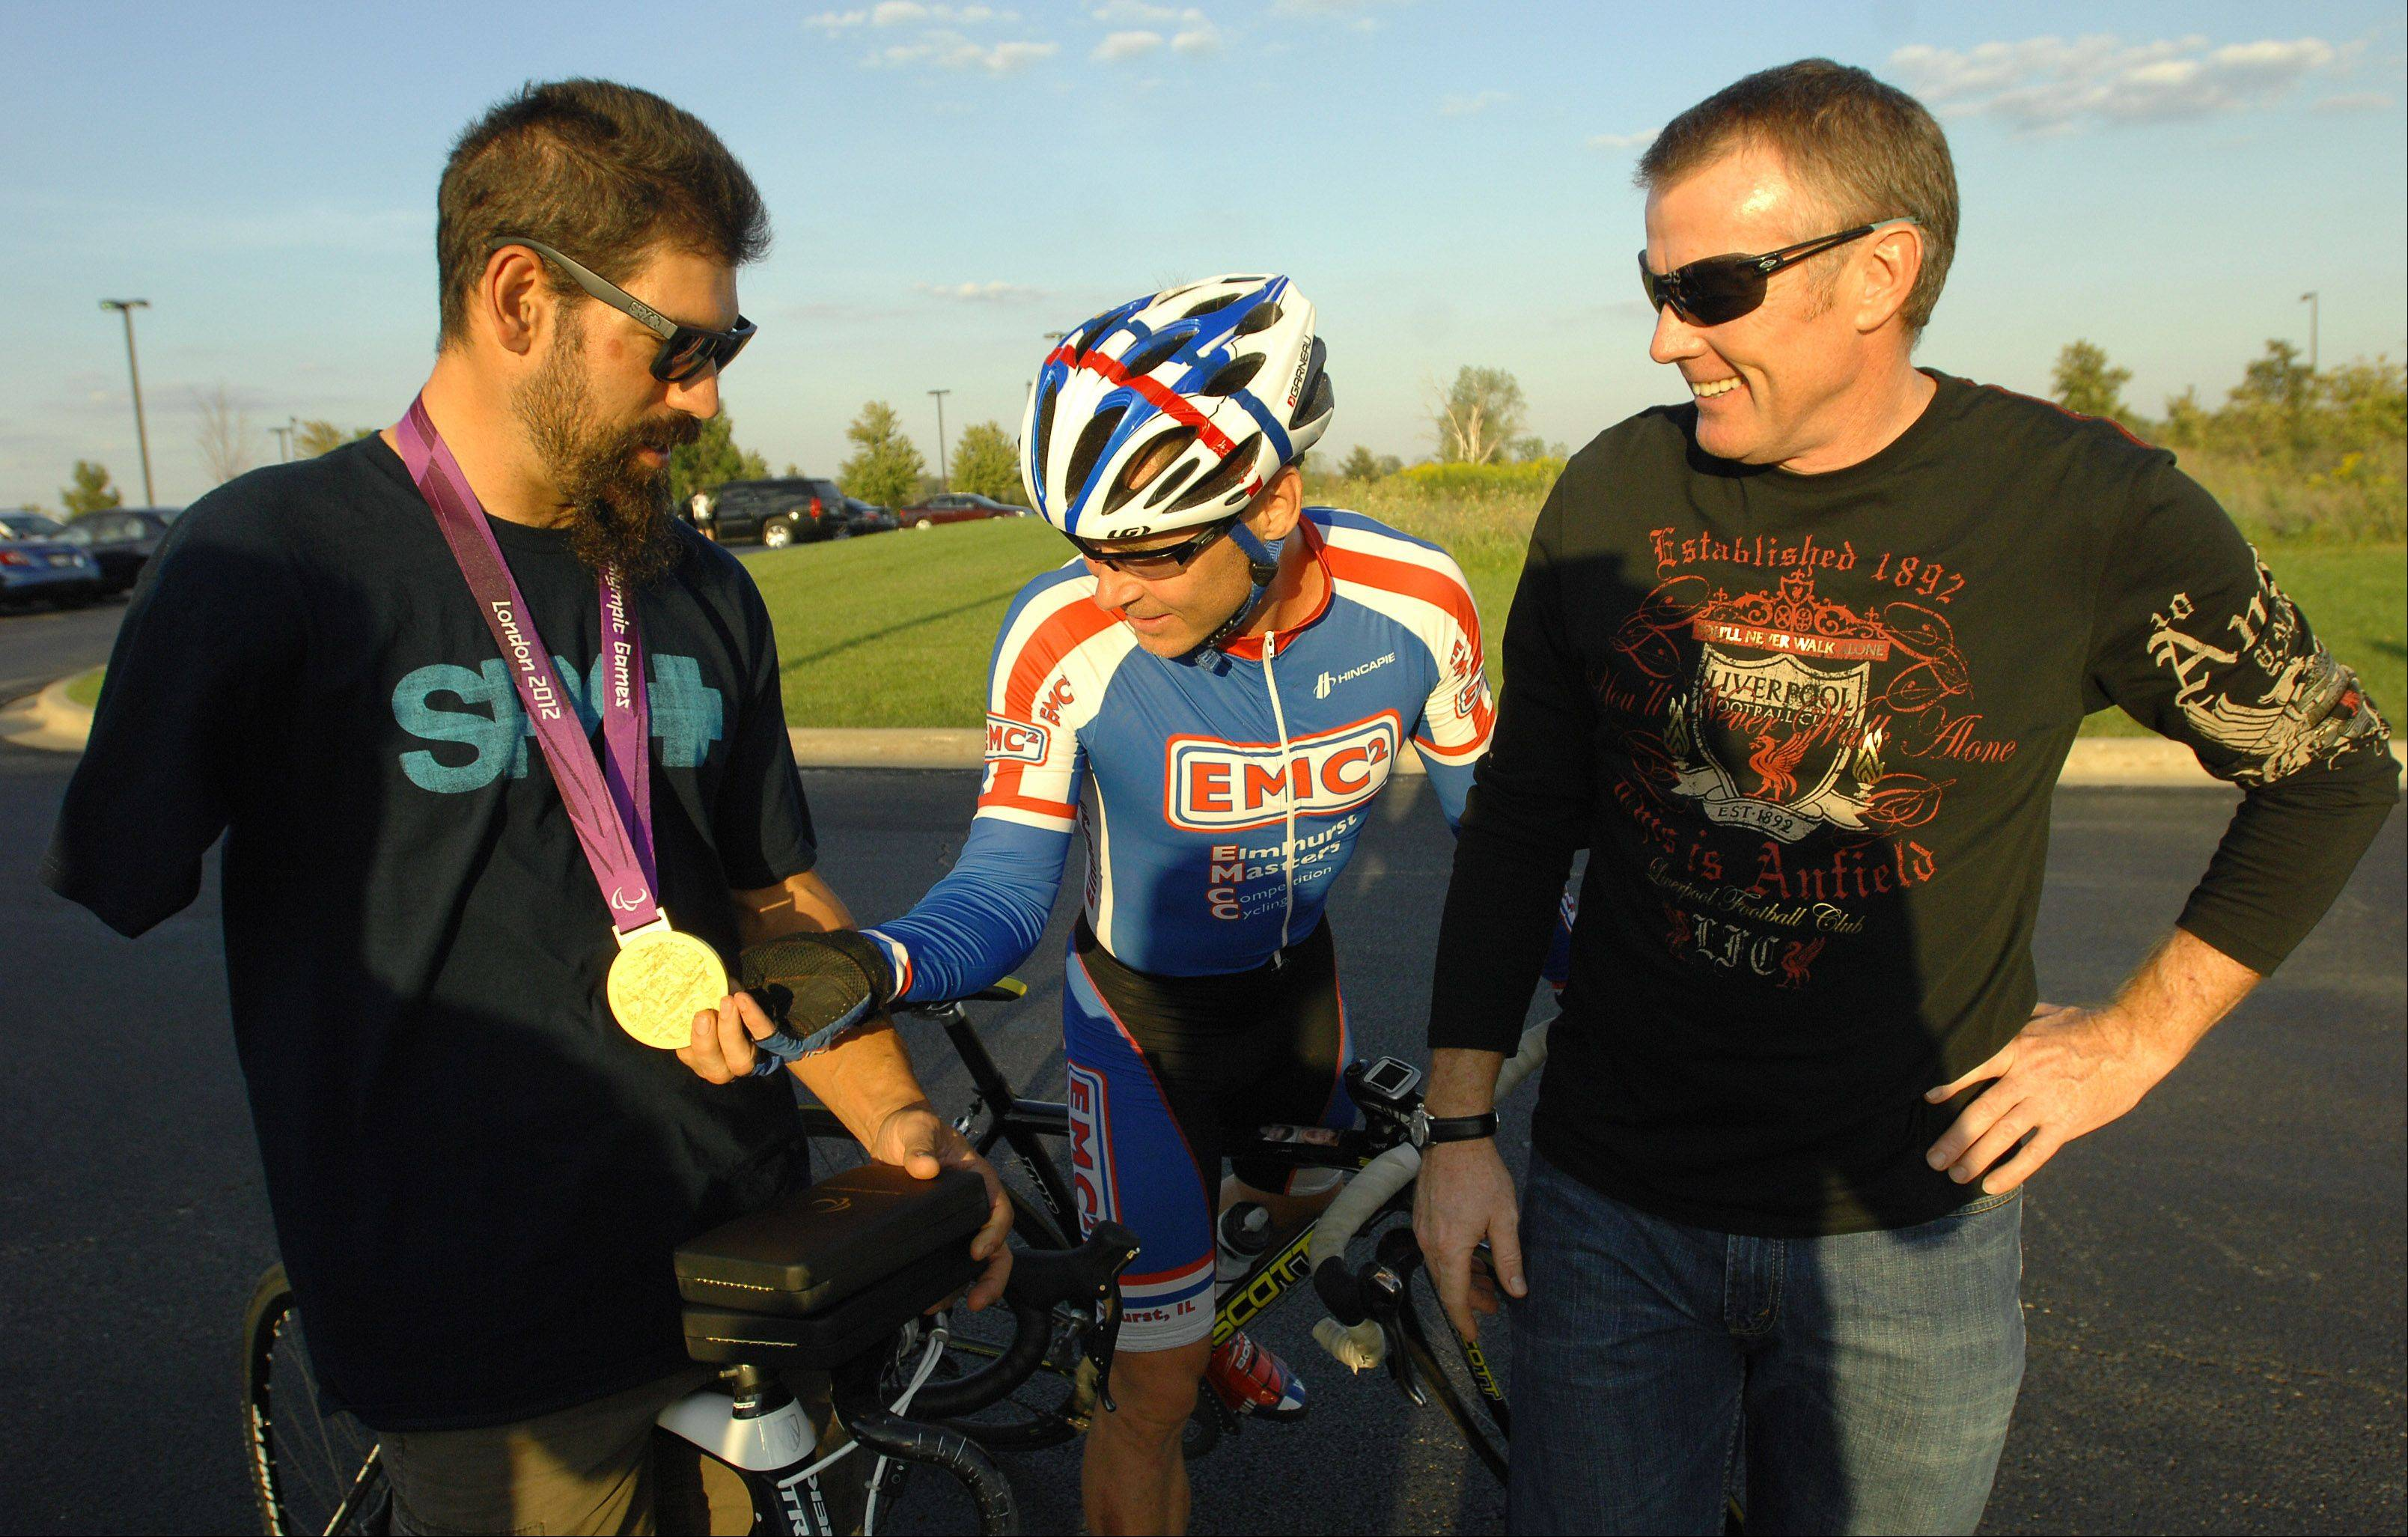 Aurora native and Paralympic gold, silver and bronze medalist Joe Berenyi, left, chats with Jostein Alvestad of Elmhurst and Andy Kerr of Batavia on Wednesday night before the start of practice races at a training session in West Chicago.